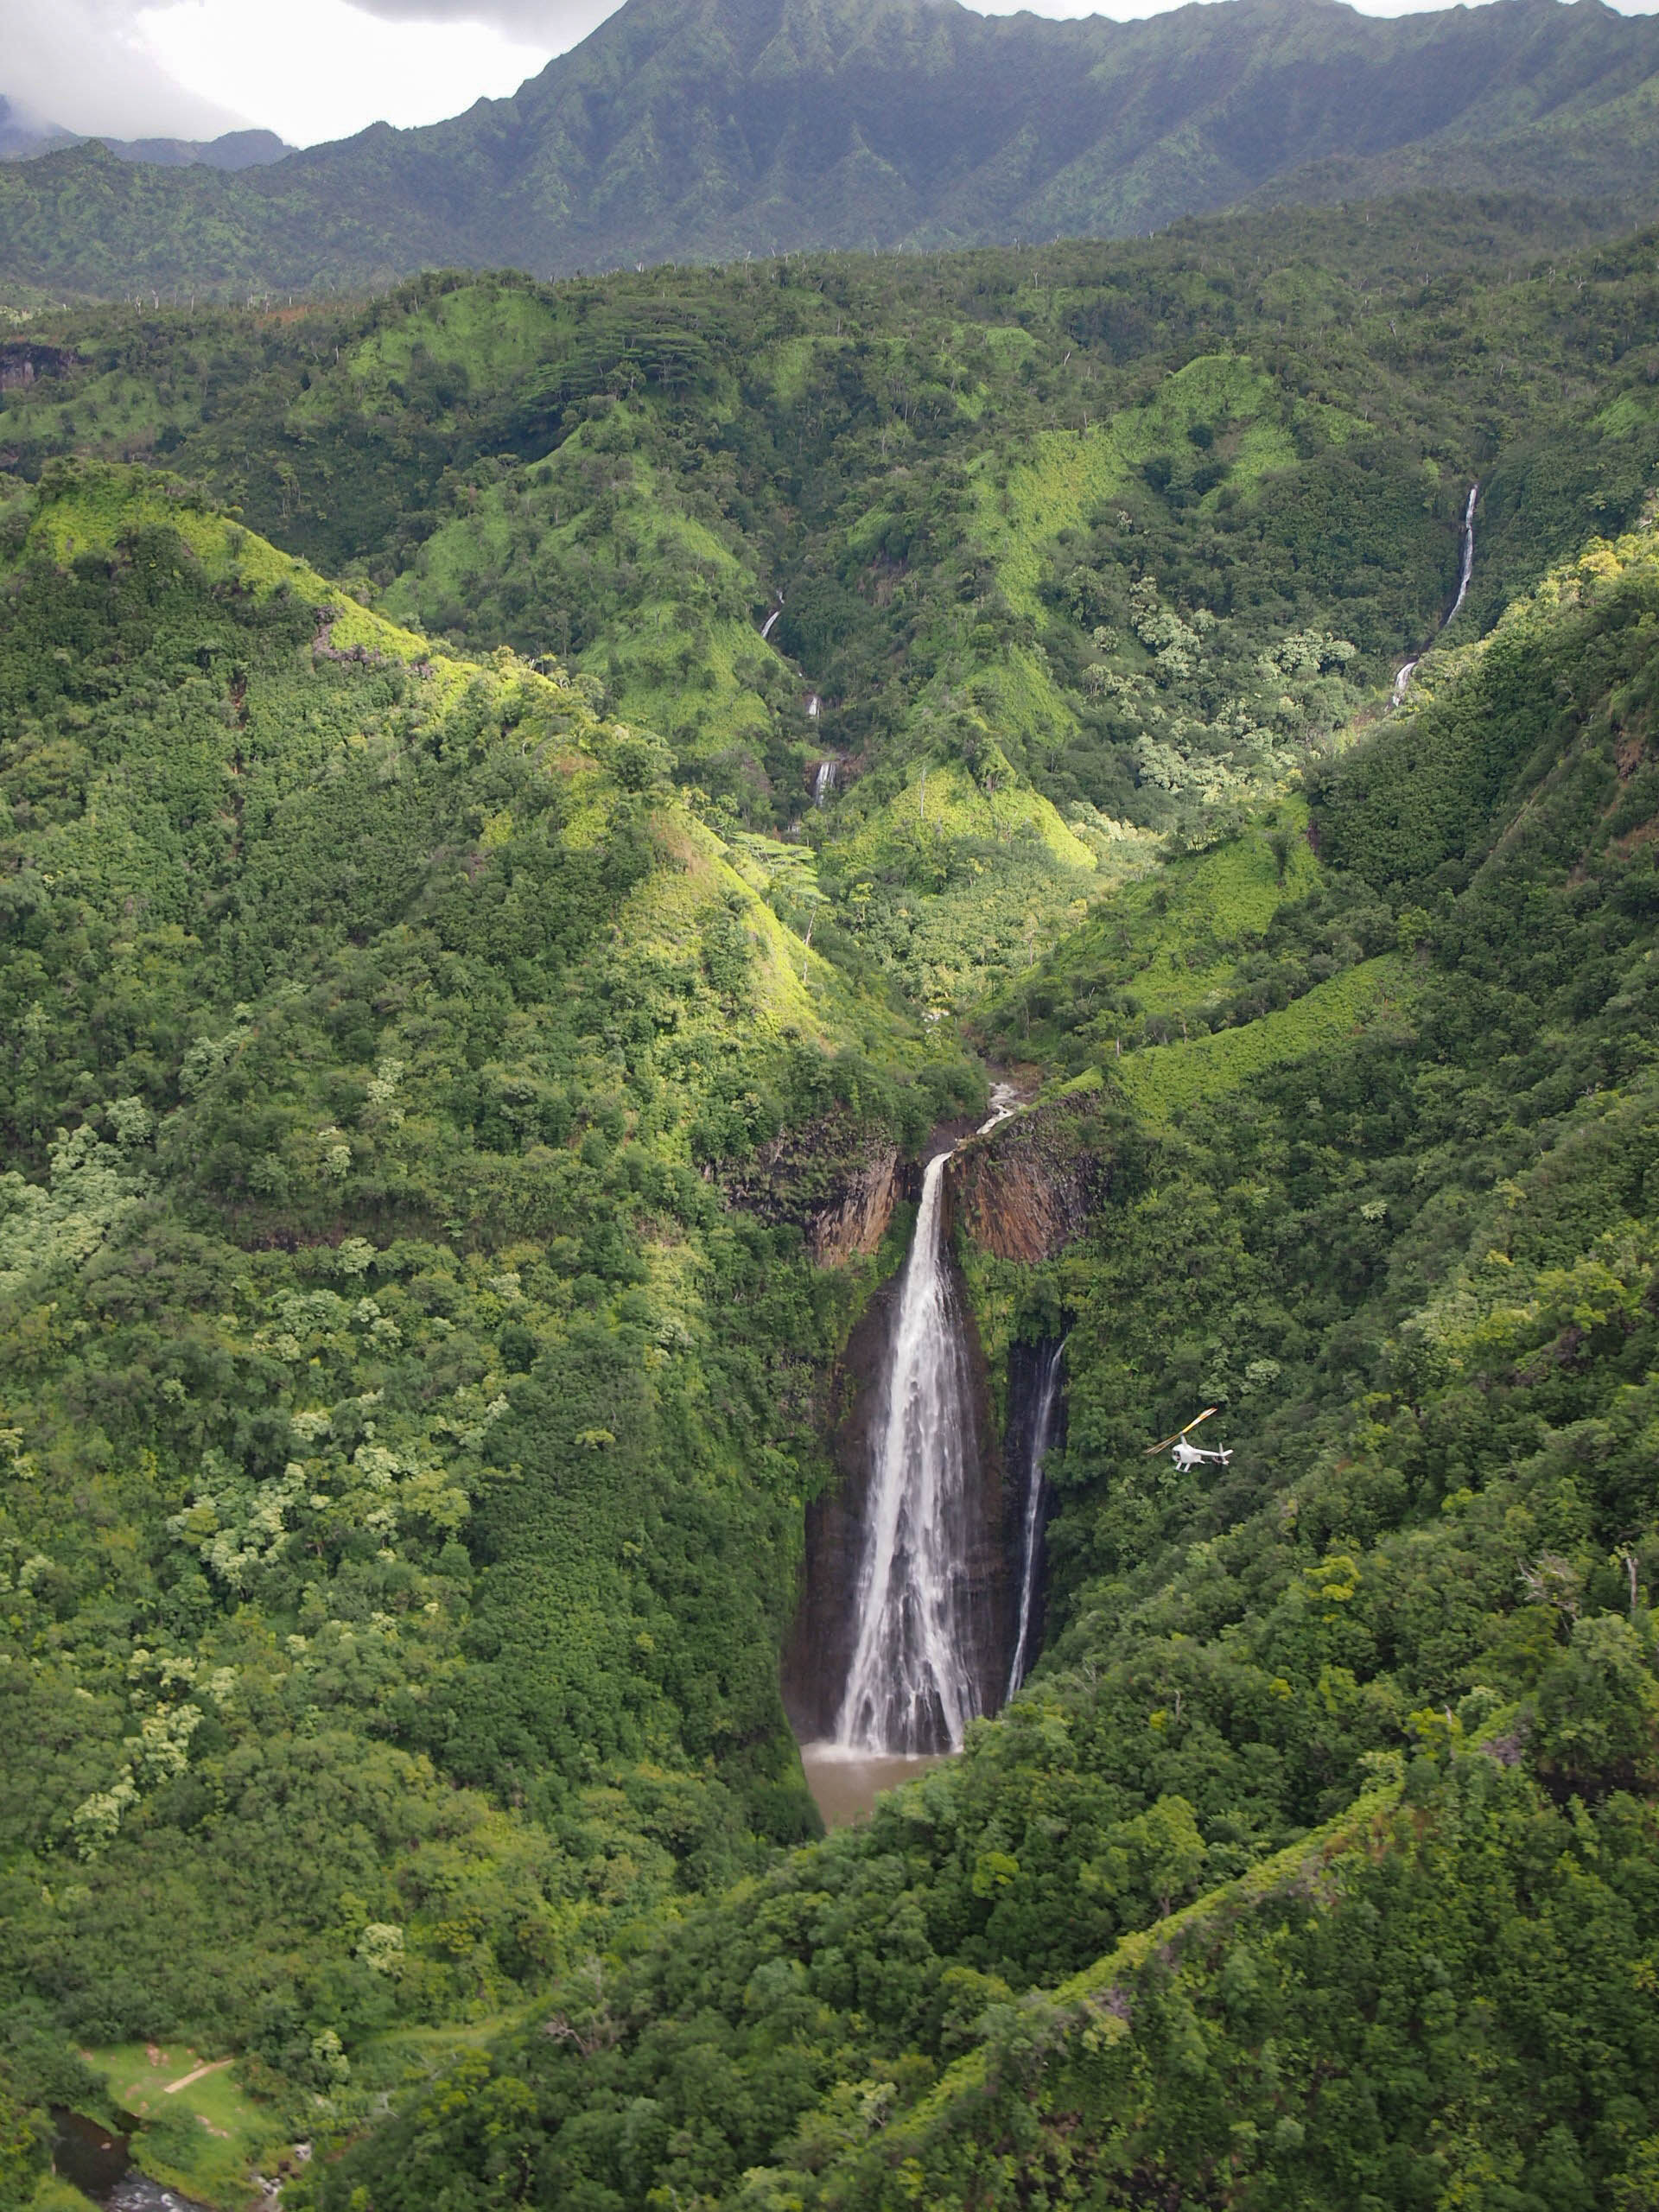 Waterfall from Jurassic Park in Kauai